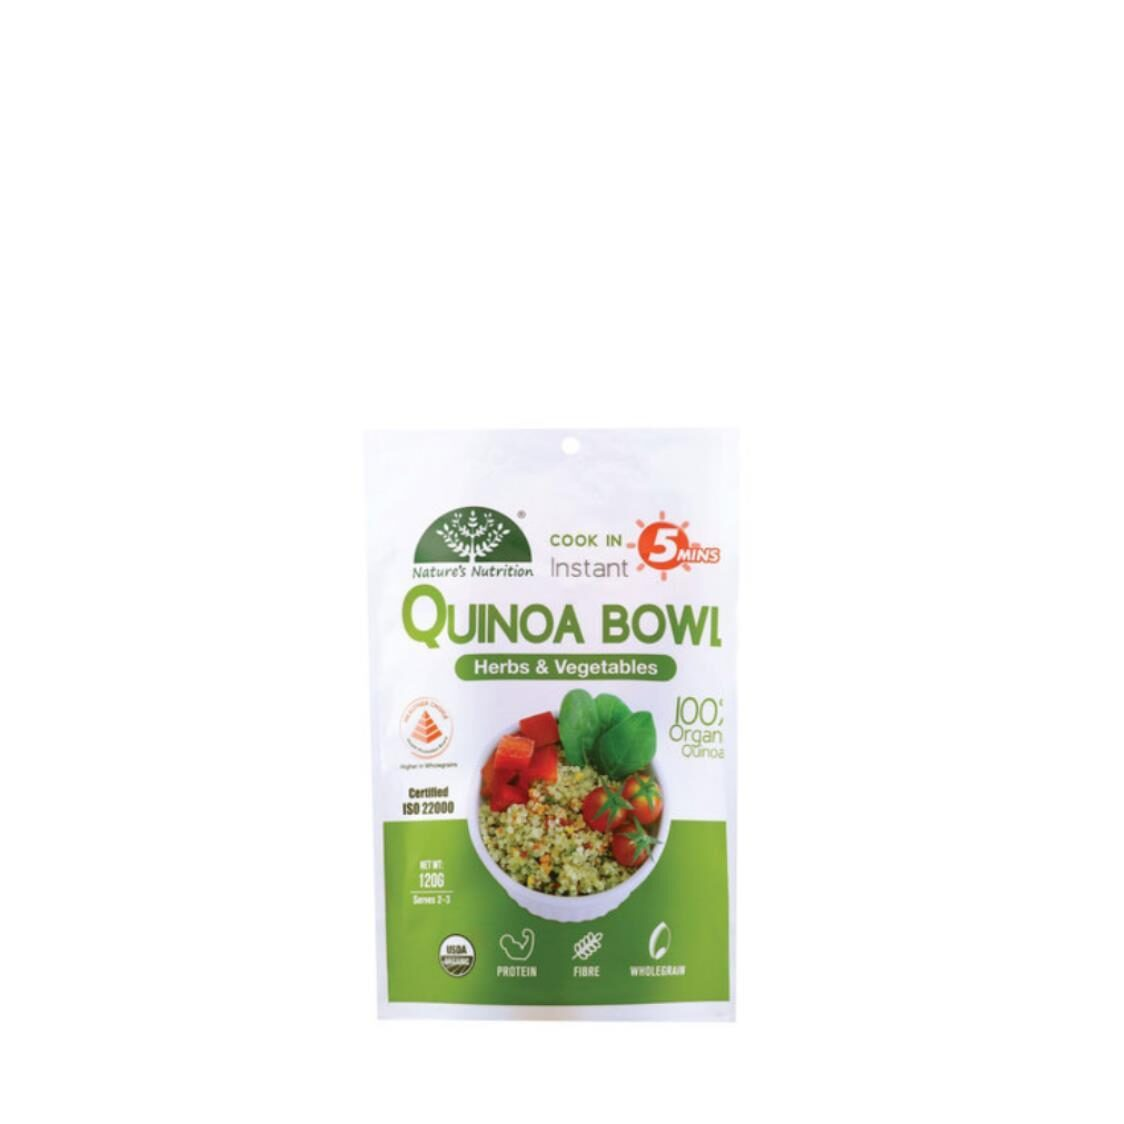 Natures Nutrition Herbs  Vegetables Quinoa Bowl 120g